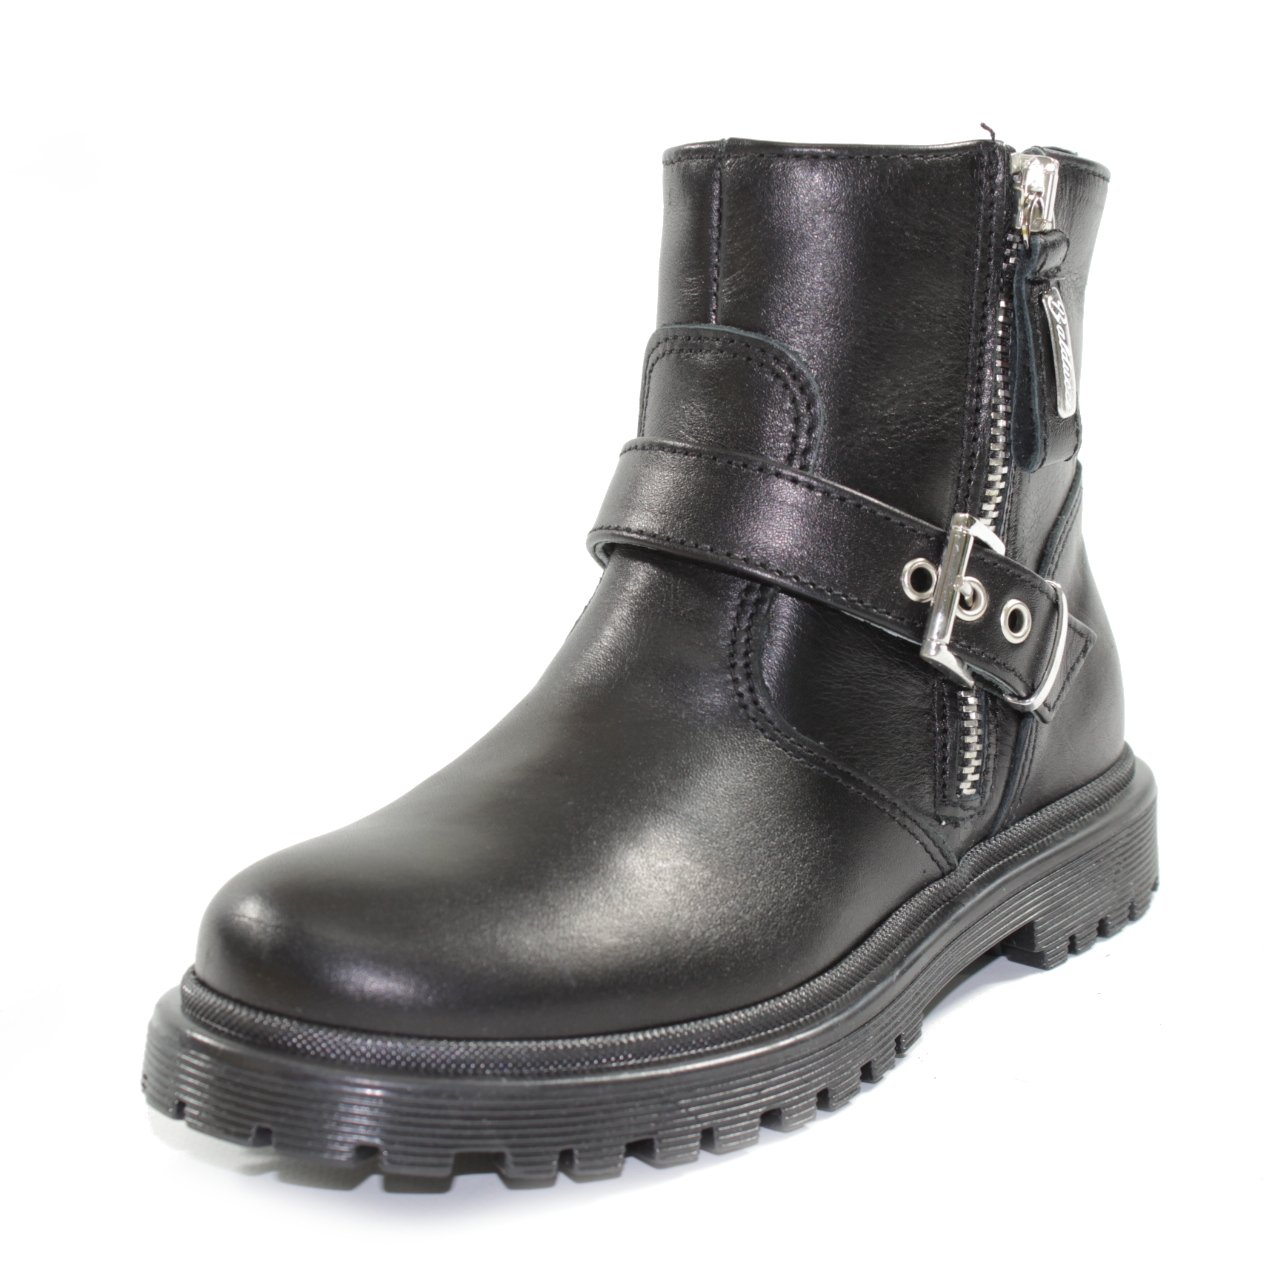 Black 32 EU Black 32 EU BALDUCCI Biker Leather Boots with Lateral Zip and Buckles Made in  ESORT 426A Black